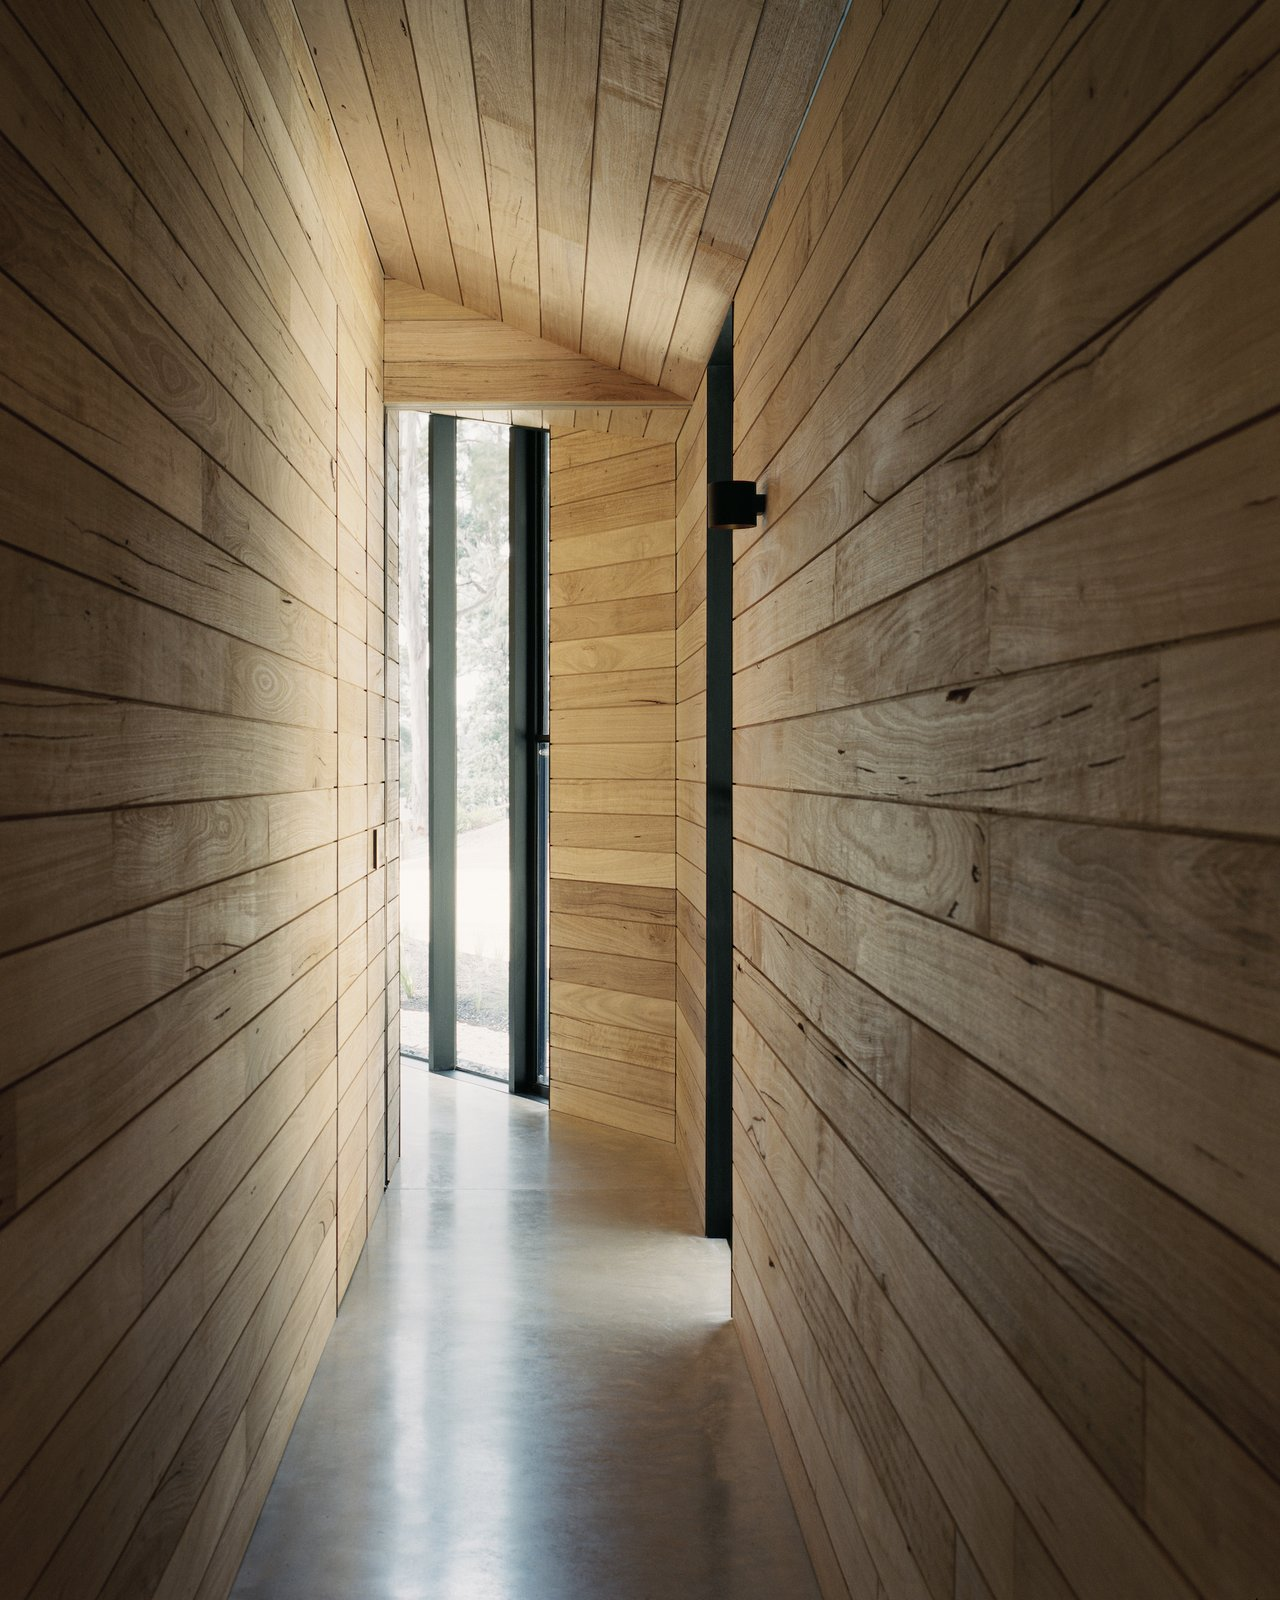 Entry hall of Two Sheds by Dreamer.